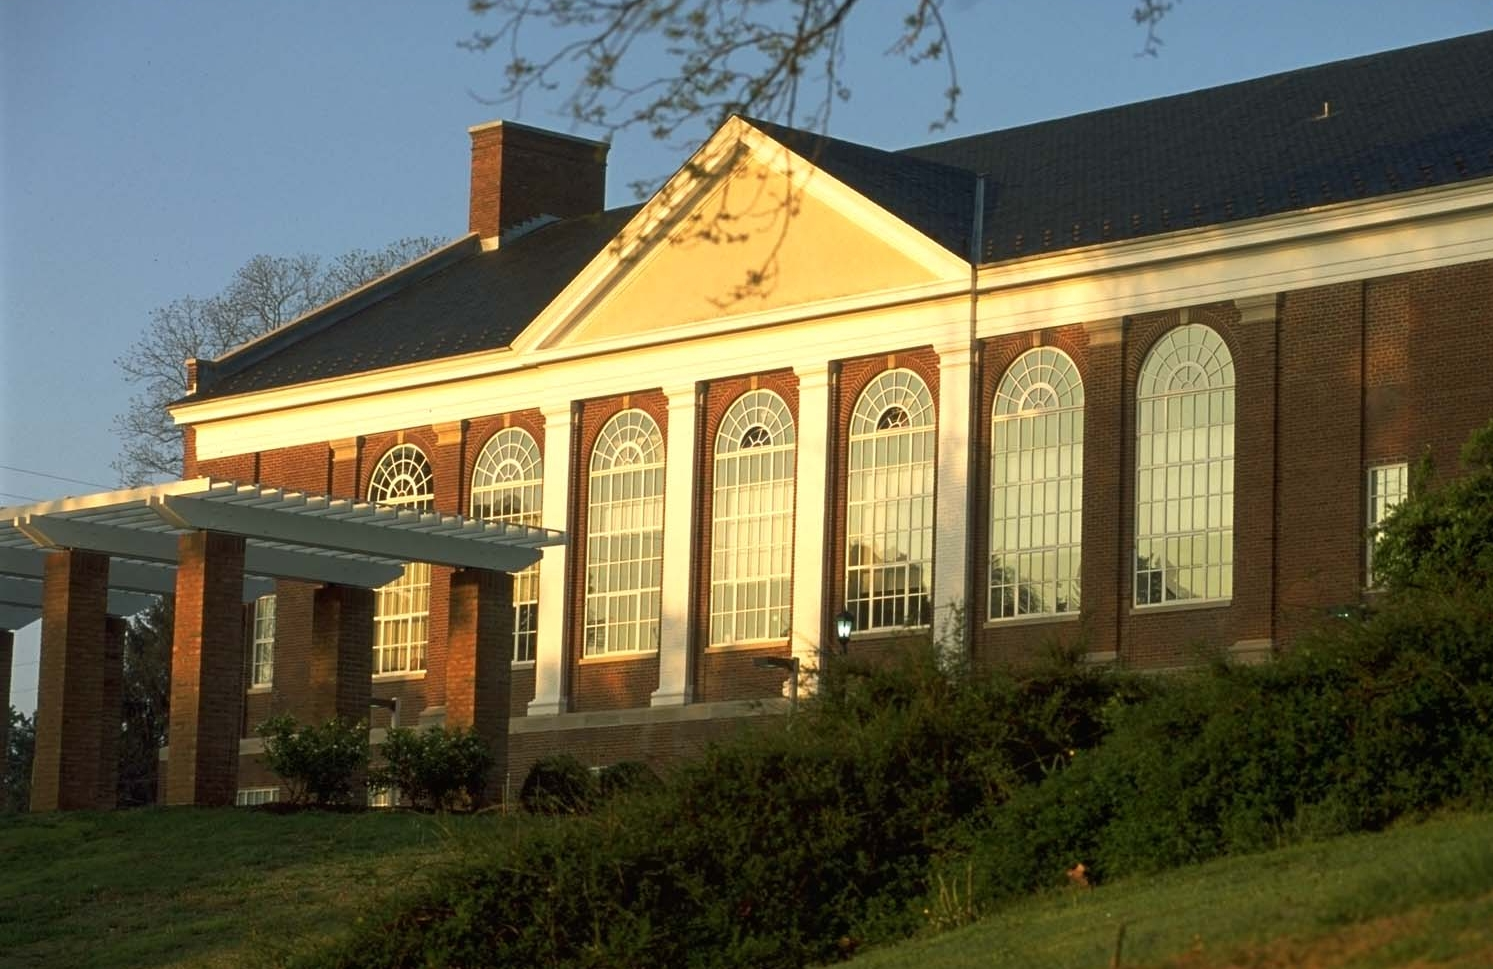 A historic brick building with white columns surrounded by grass.